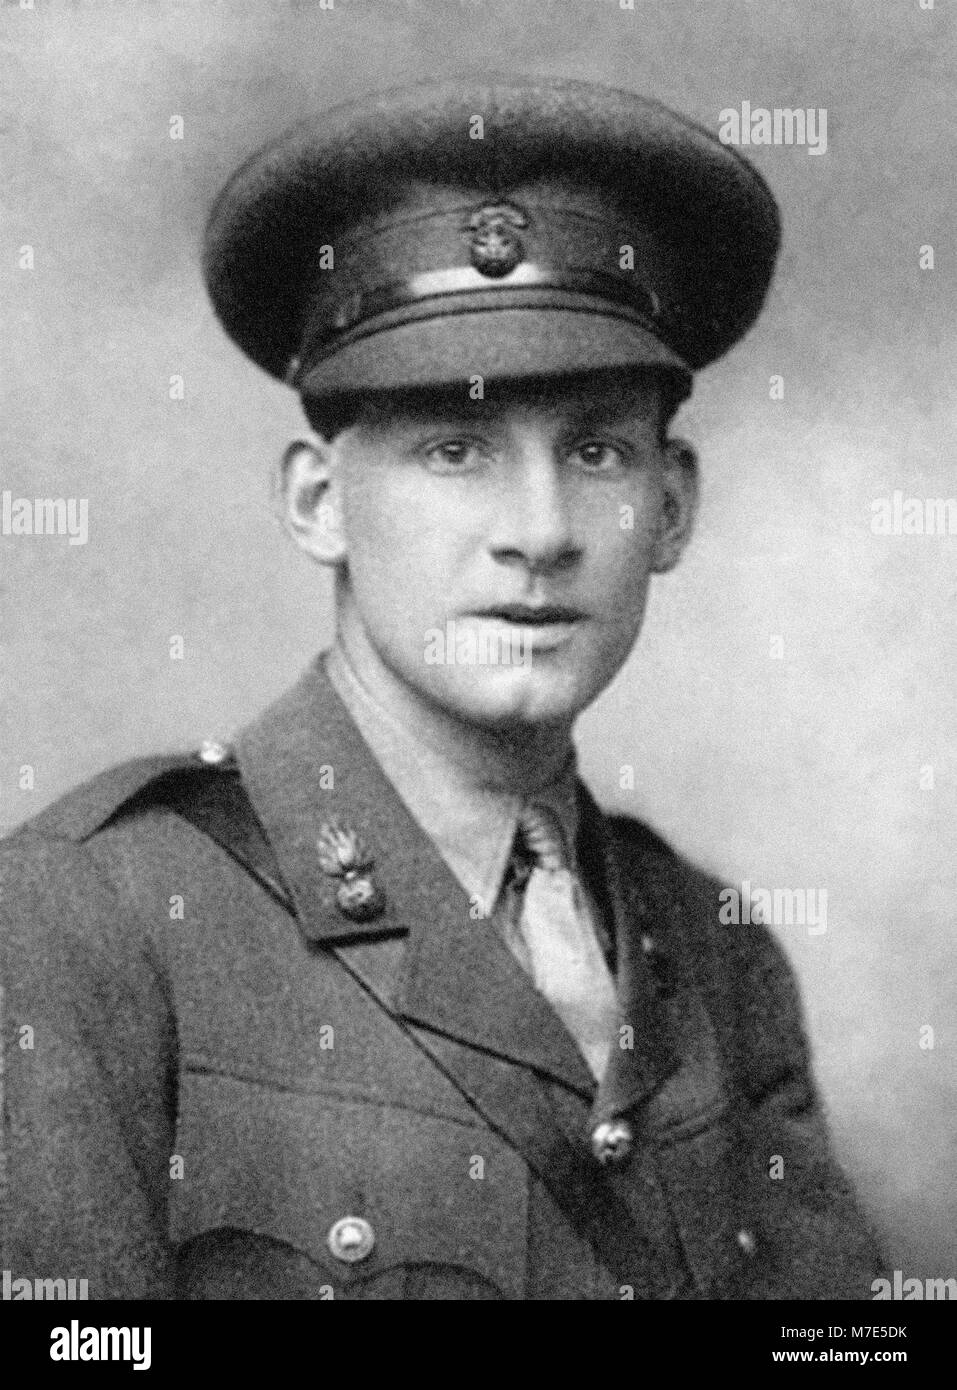 Siegfried Sassoon (1886-1967). Portrait of the English poet and soldier by George Charles Beresford, 1915. - Stock Image